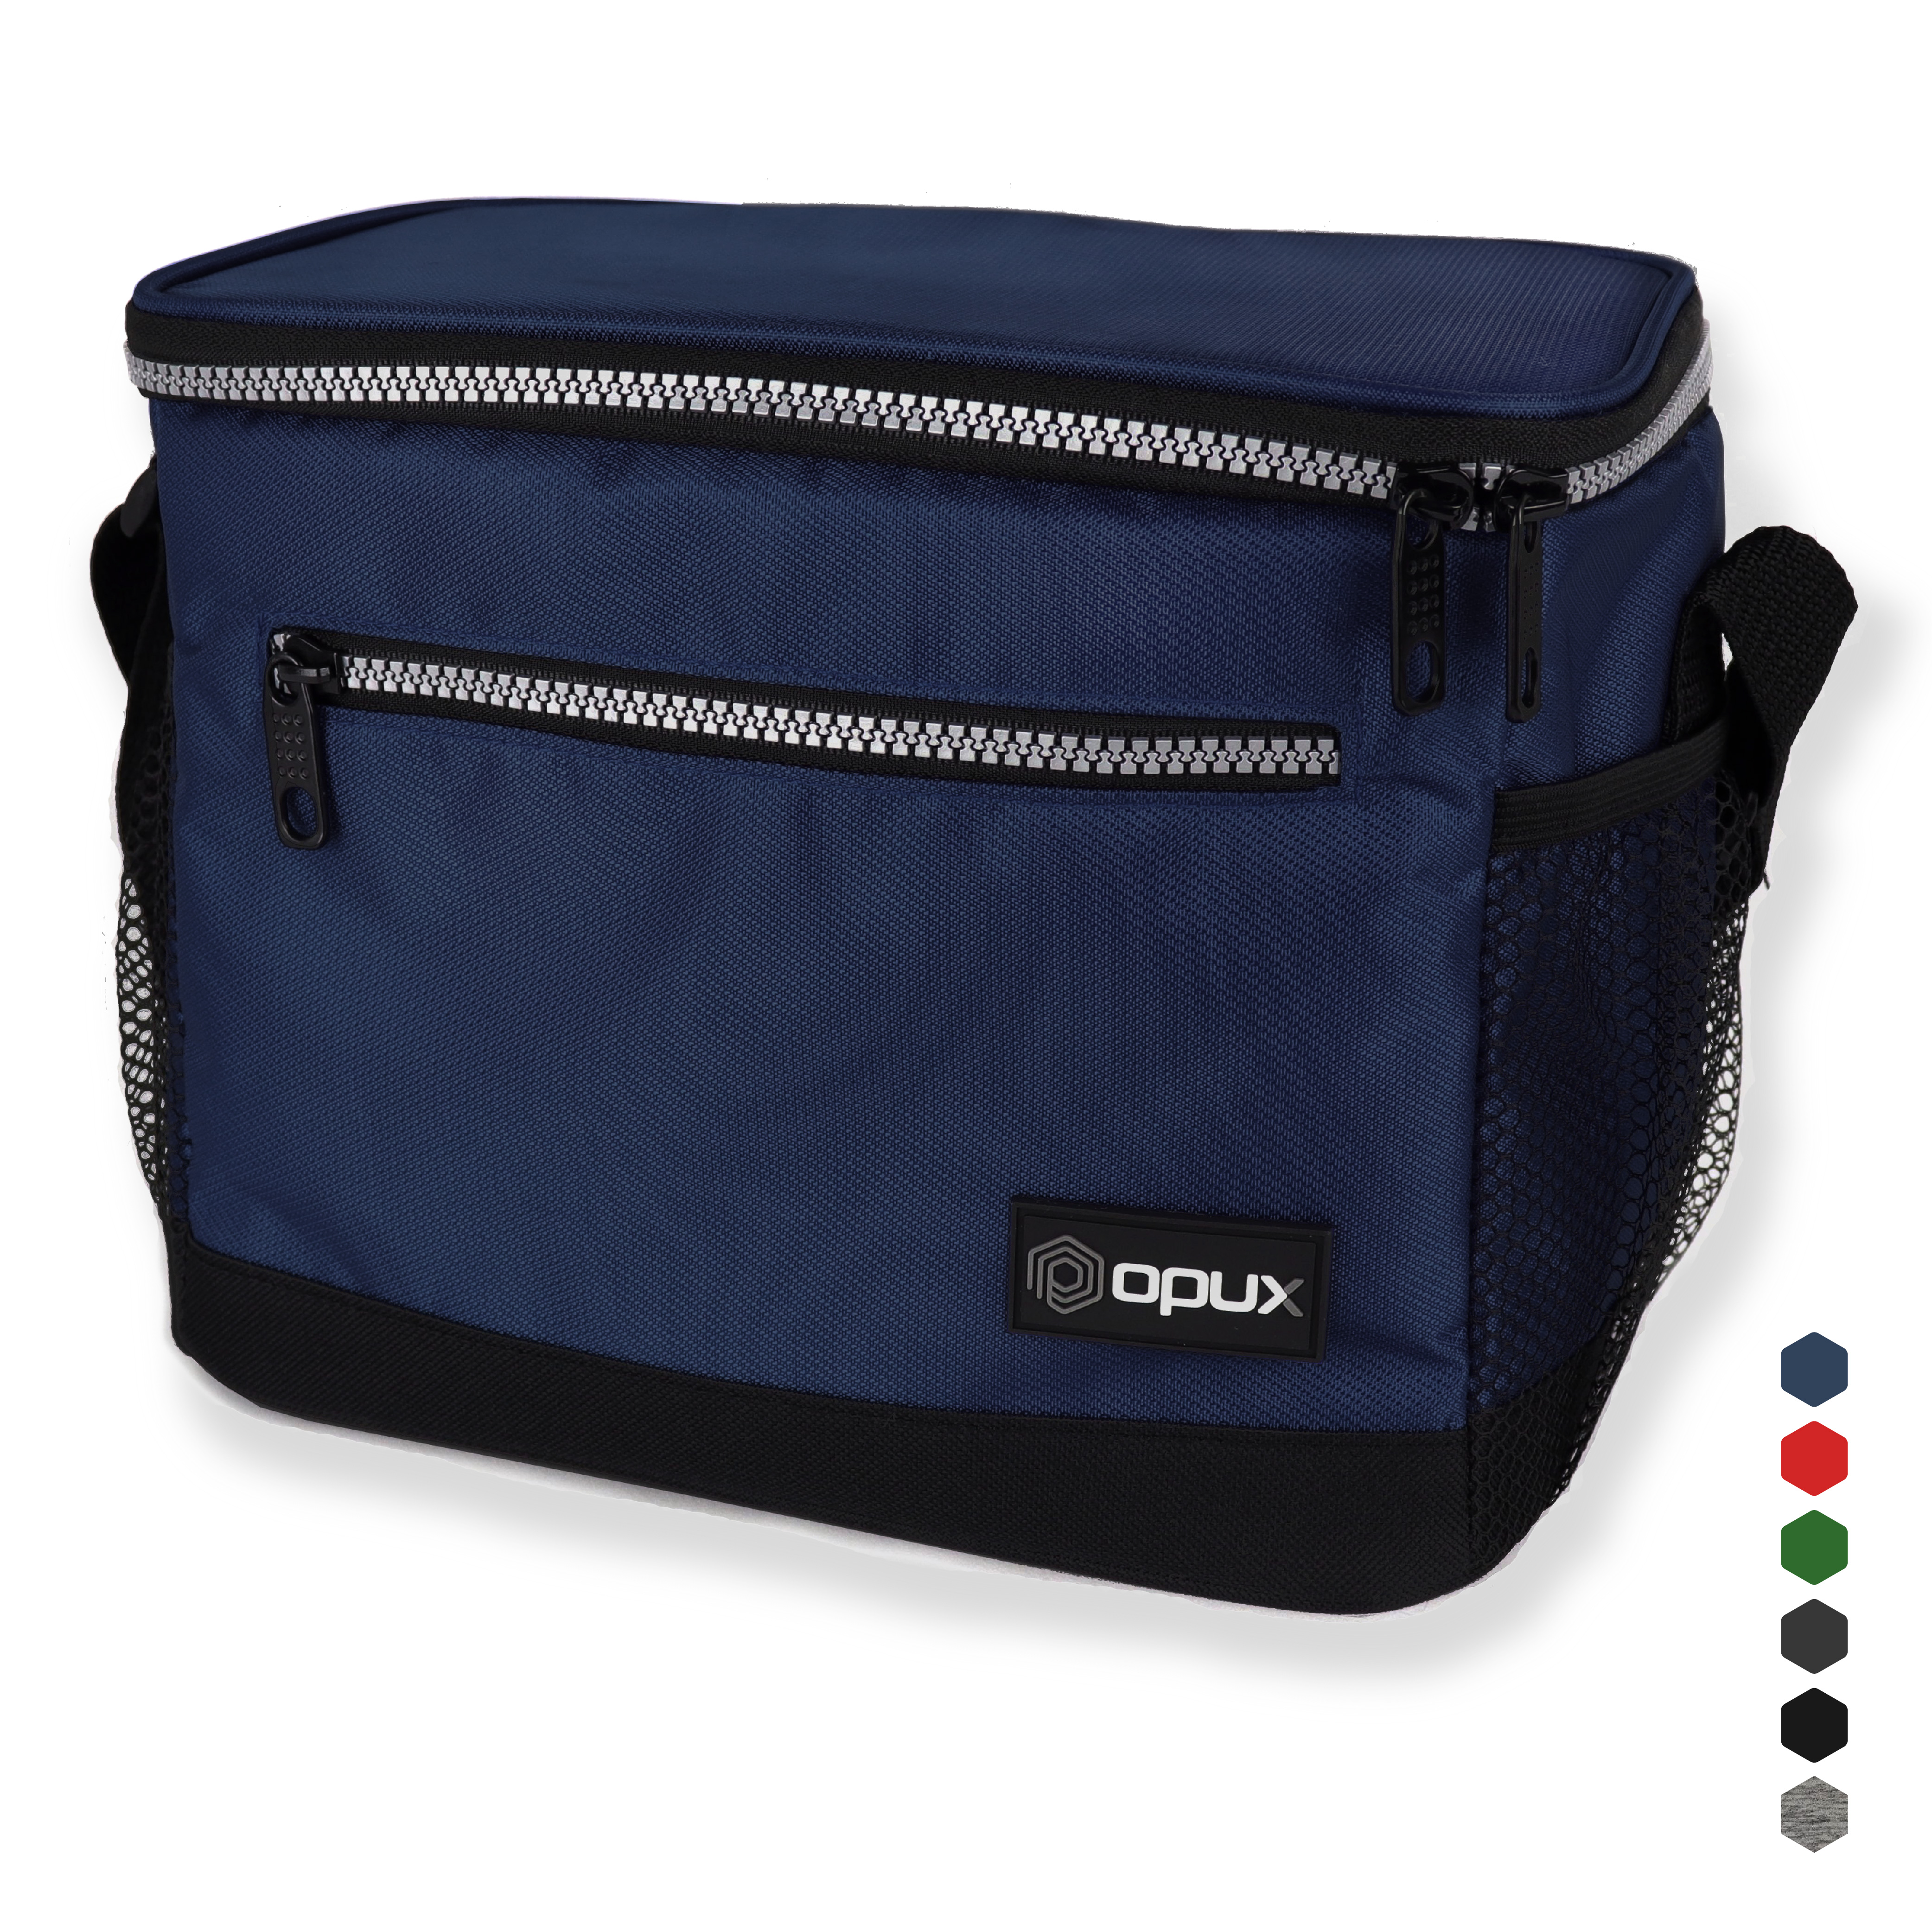 Premium Insulated Cooling Lunch Bag For Work by OPUX - Navy